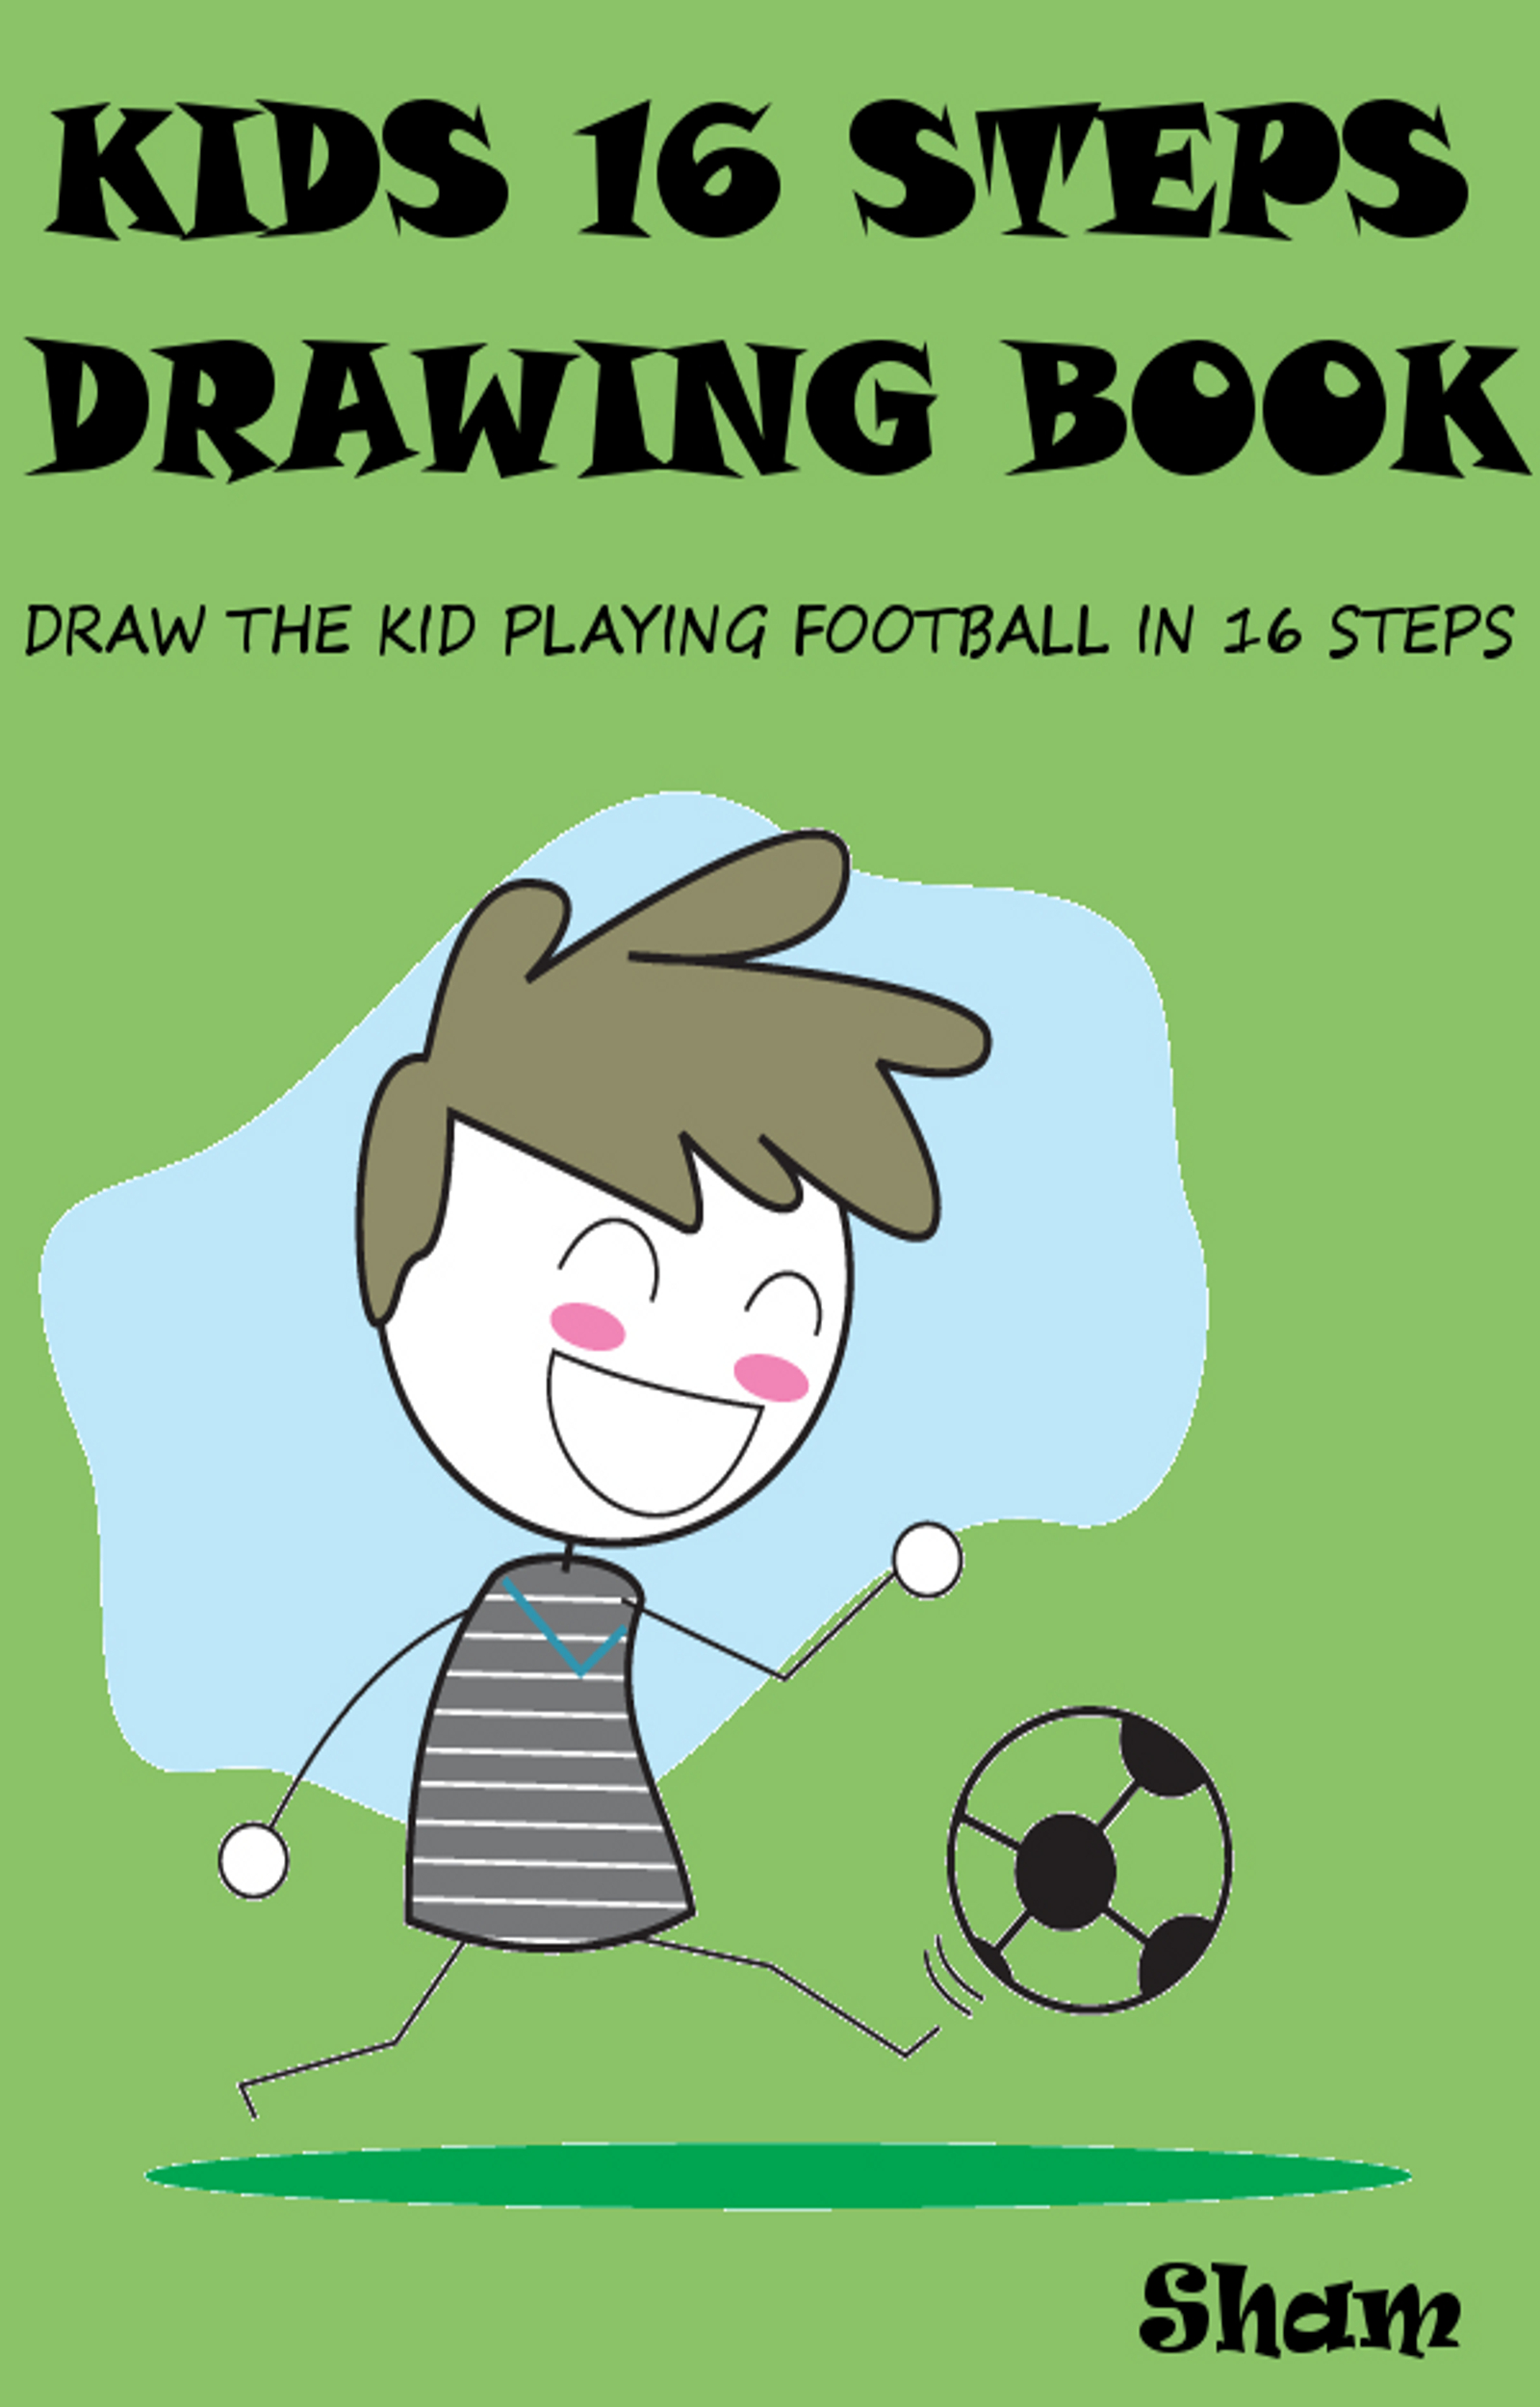 Simple Book Cover Drawing ~ Smashwords kids steps drawing book draw the kid